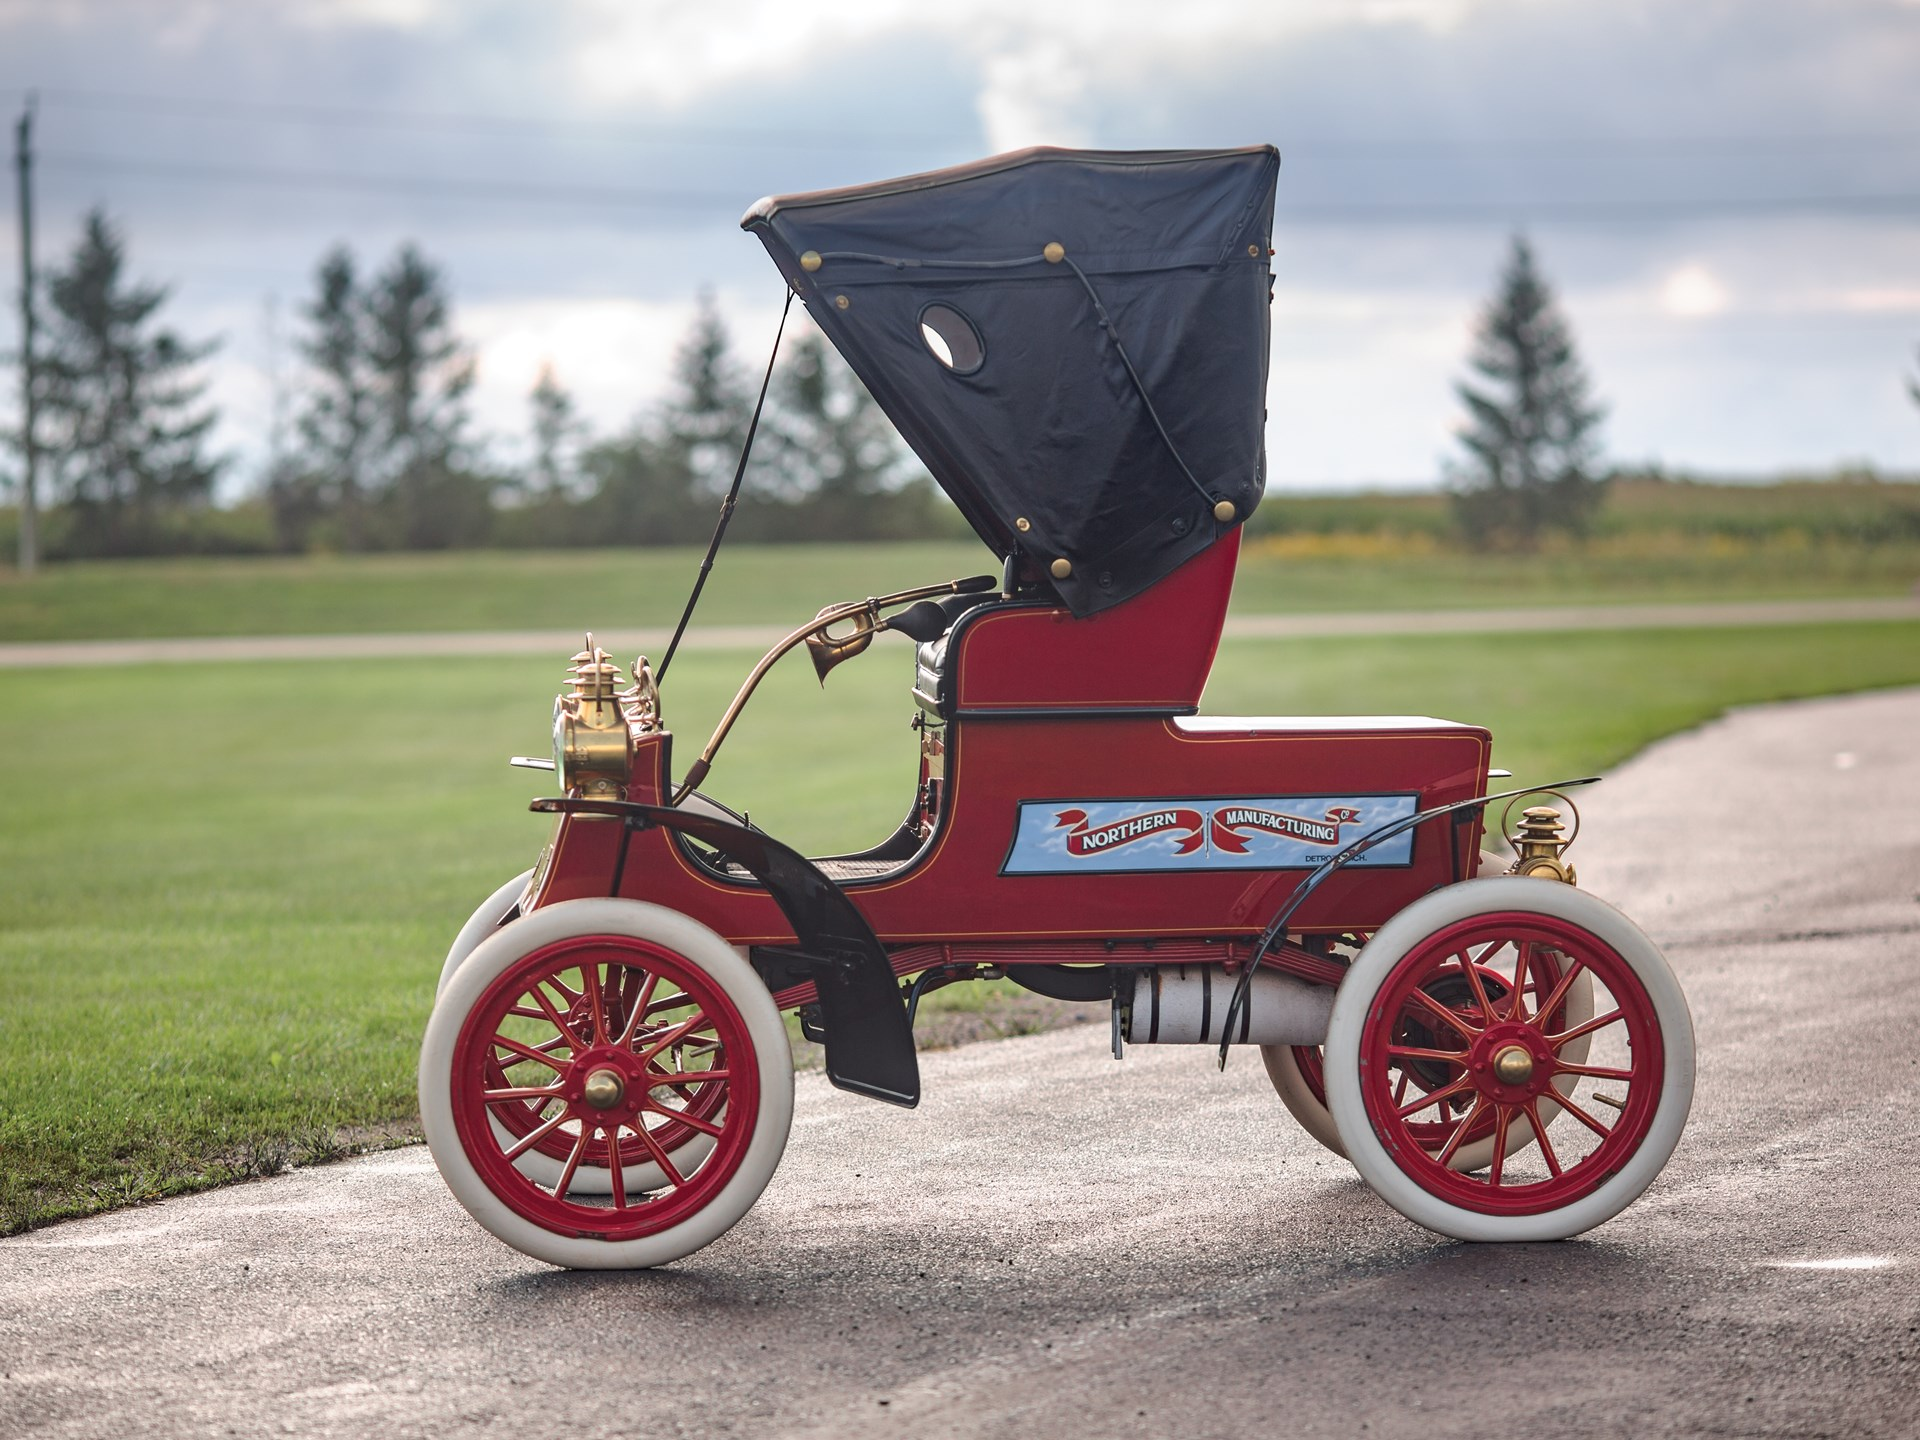 1905 Northern Runabout